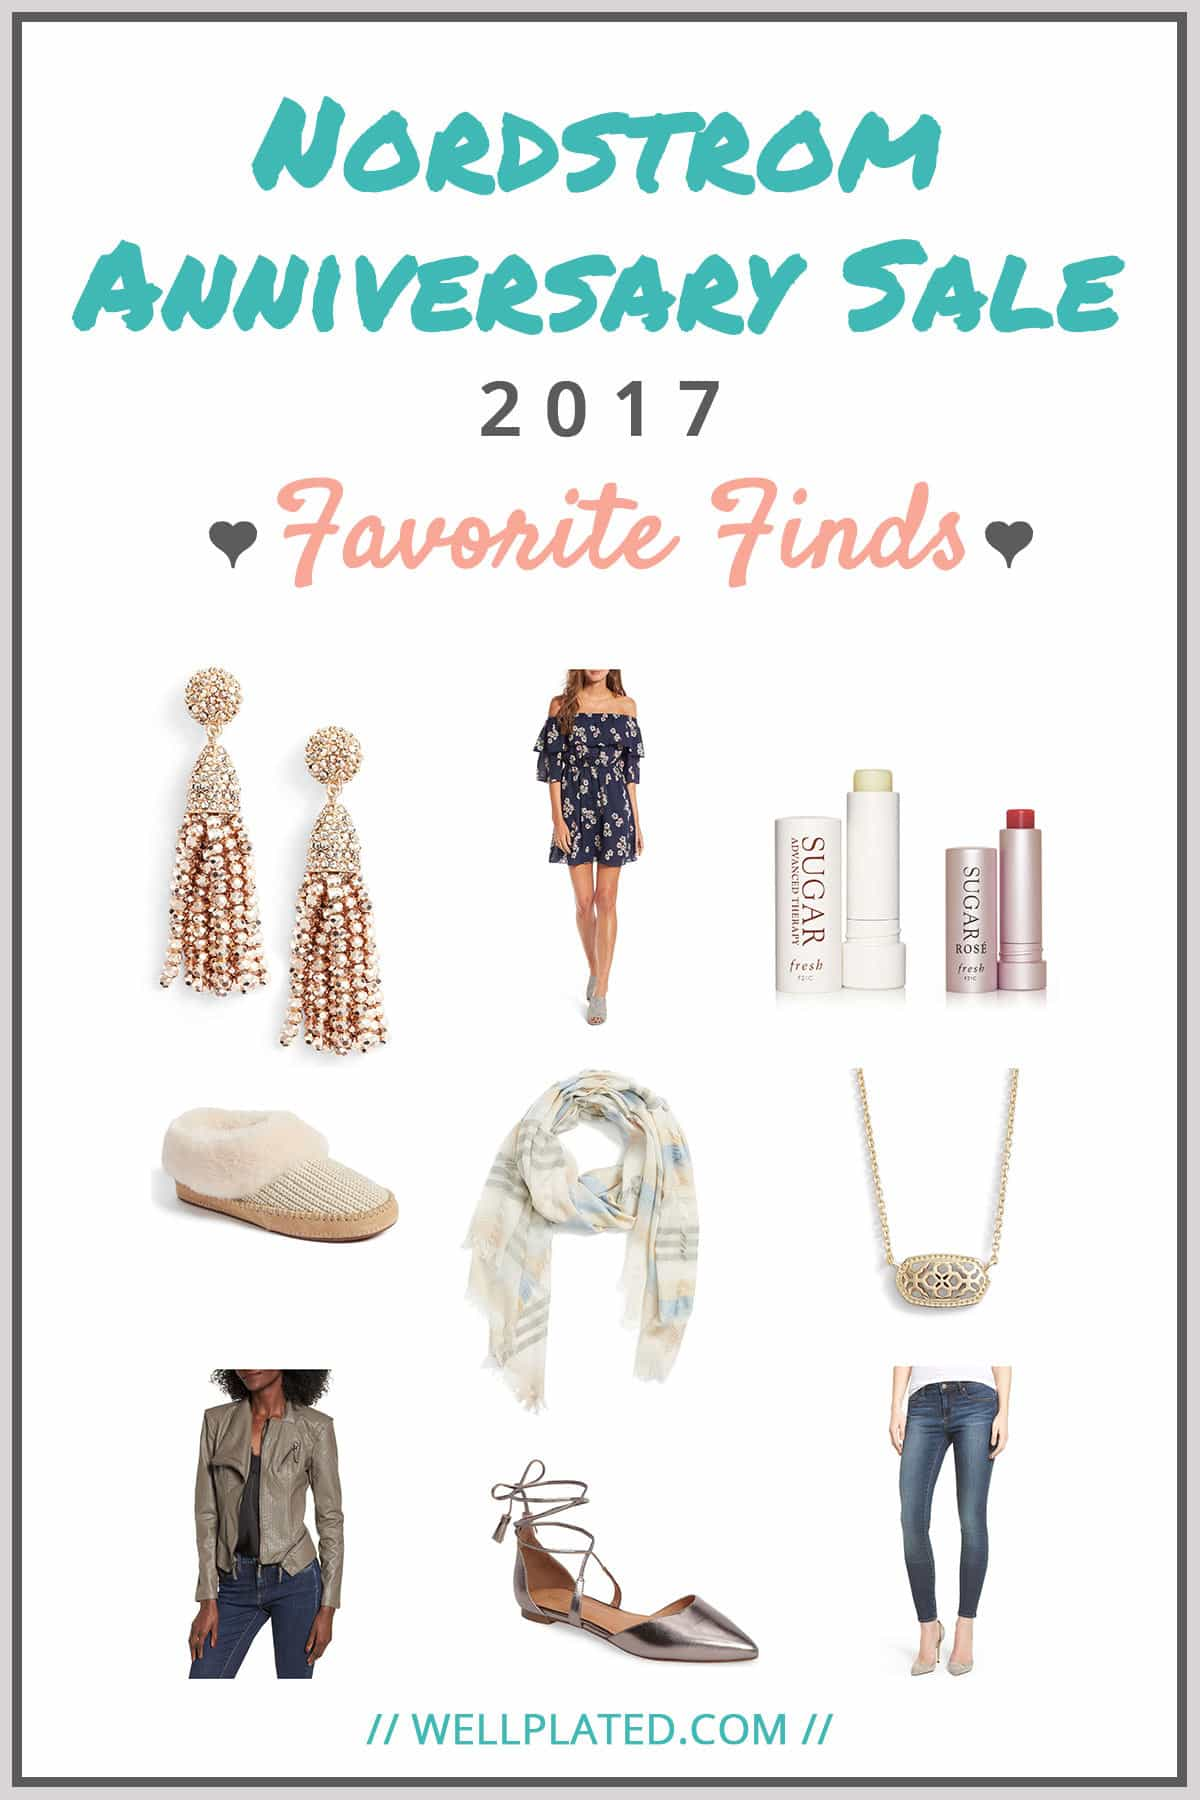 c63fe6eb984c5 Best of the Nordstrom Anniversary Sale 2017. Great deals on the hottest  styles, from